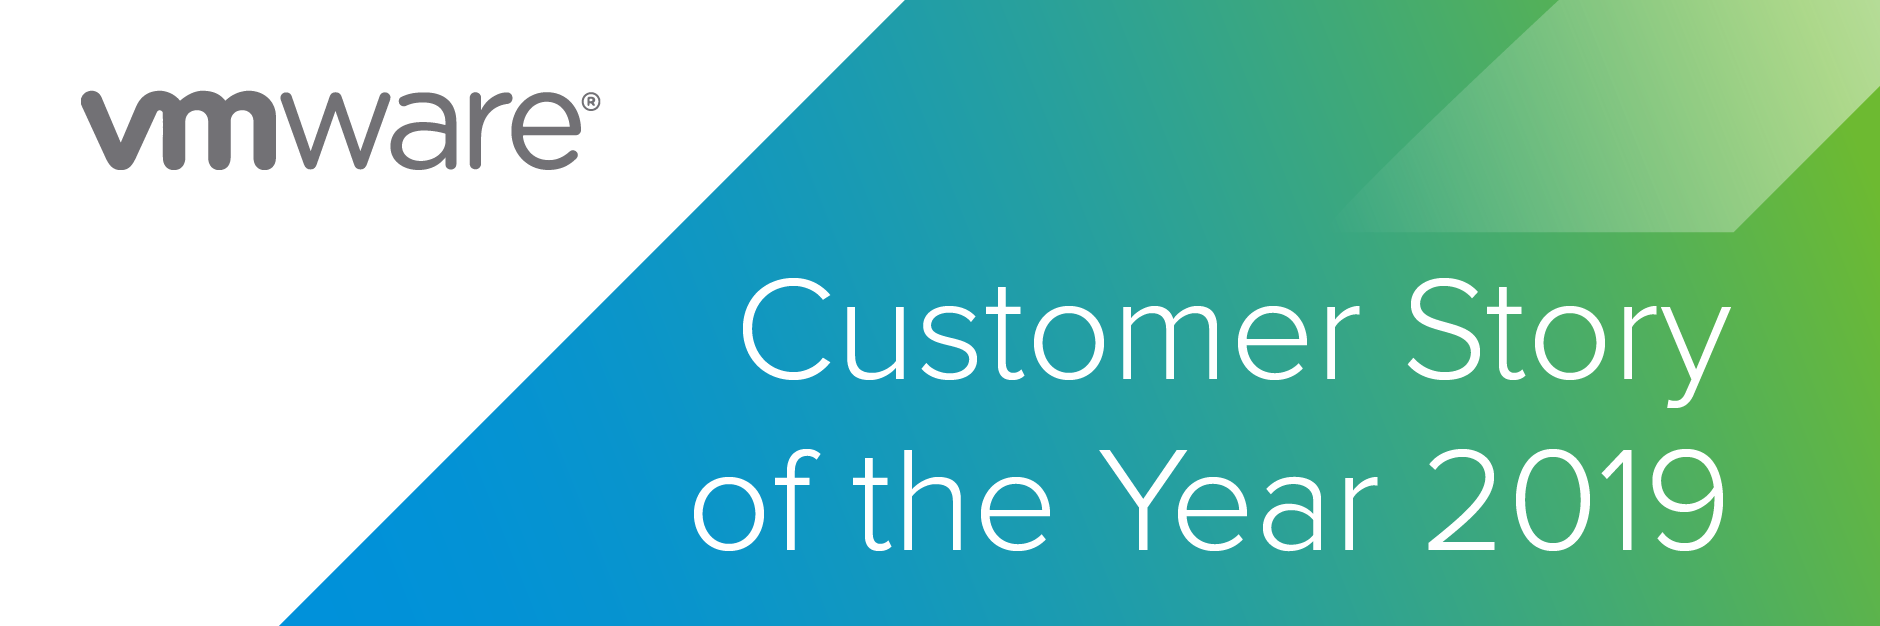 Customer Story of the Year 2019